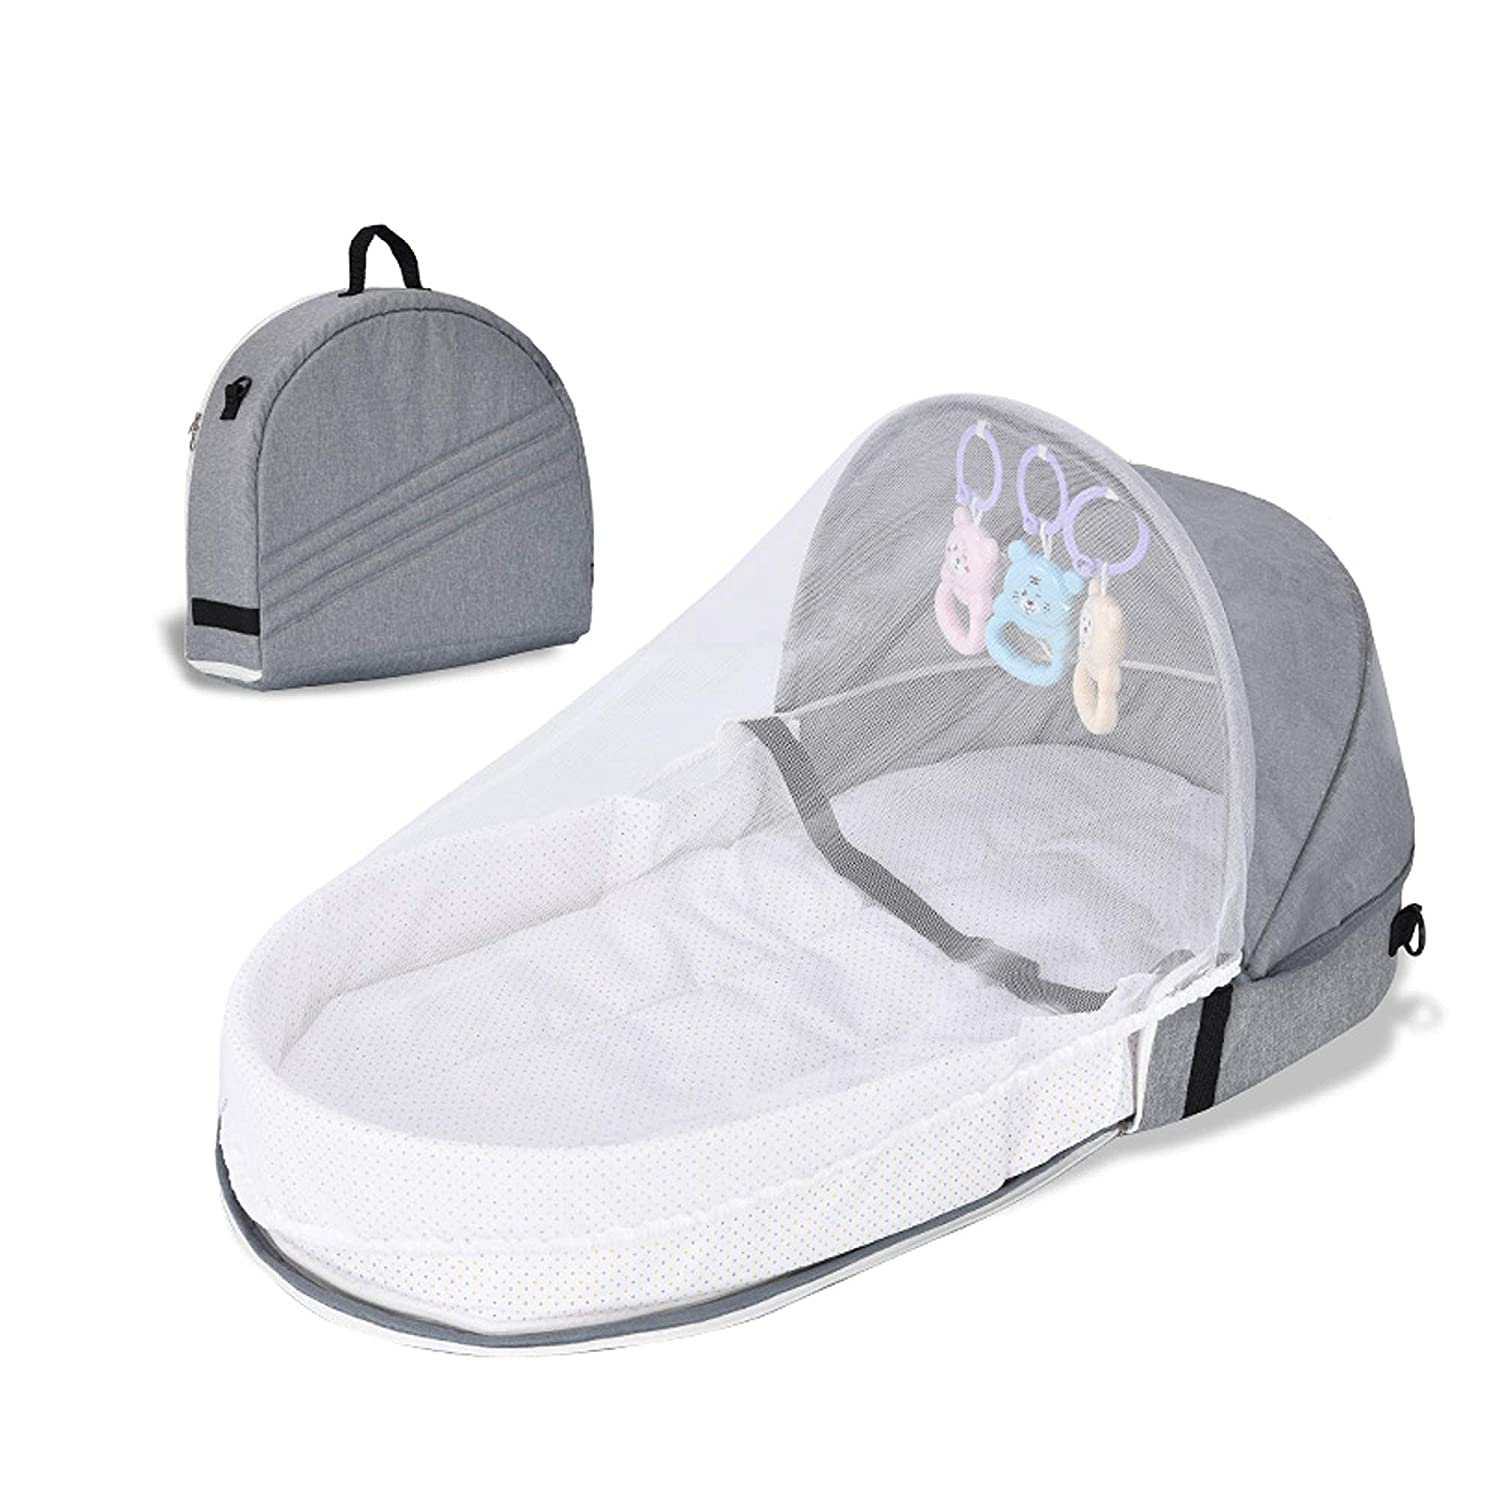 Tititek Baby Bed Travel Crib, Portable Toddler Bed Baby Crib with Mosquito Net, Foldable Bassinet Infant Sleeping Basket with Toys for Newborn Baby Mummy Bag (Grey)